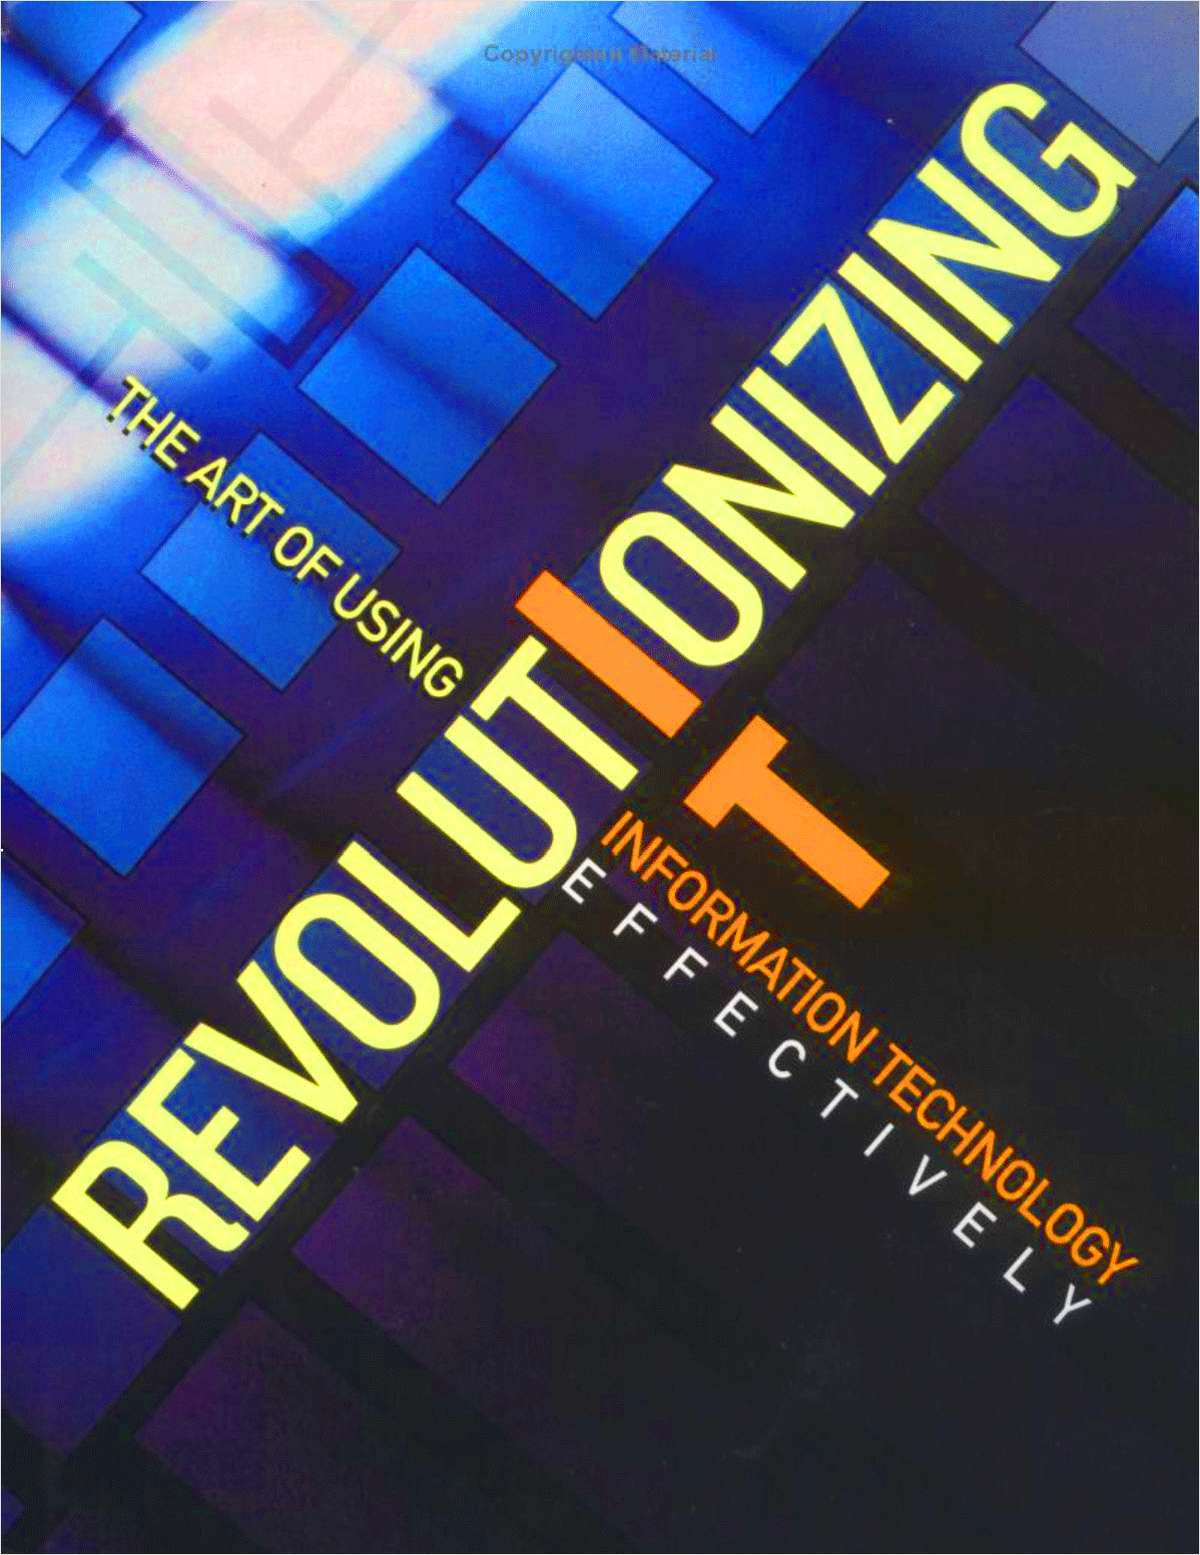 Revolutionizing IT Research Kit - Includes a Free $8.50 Book Summary